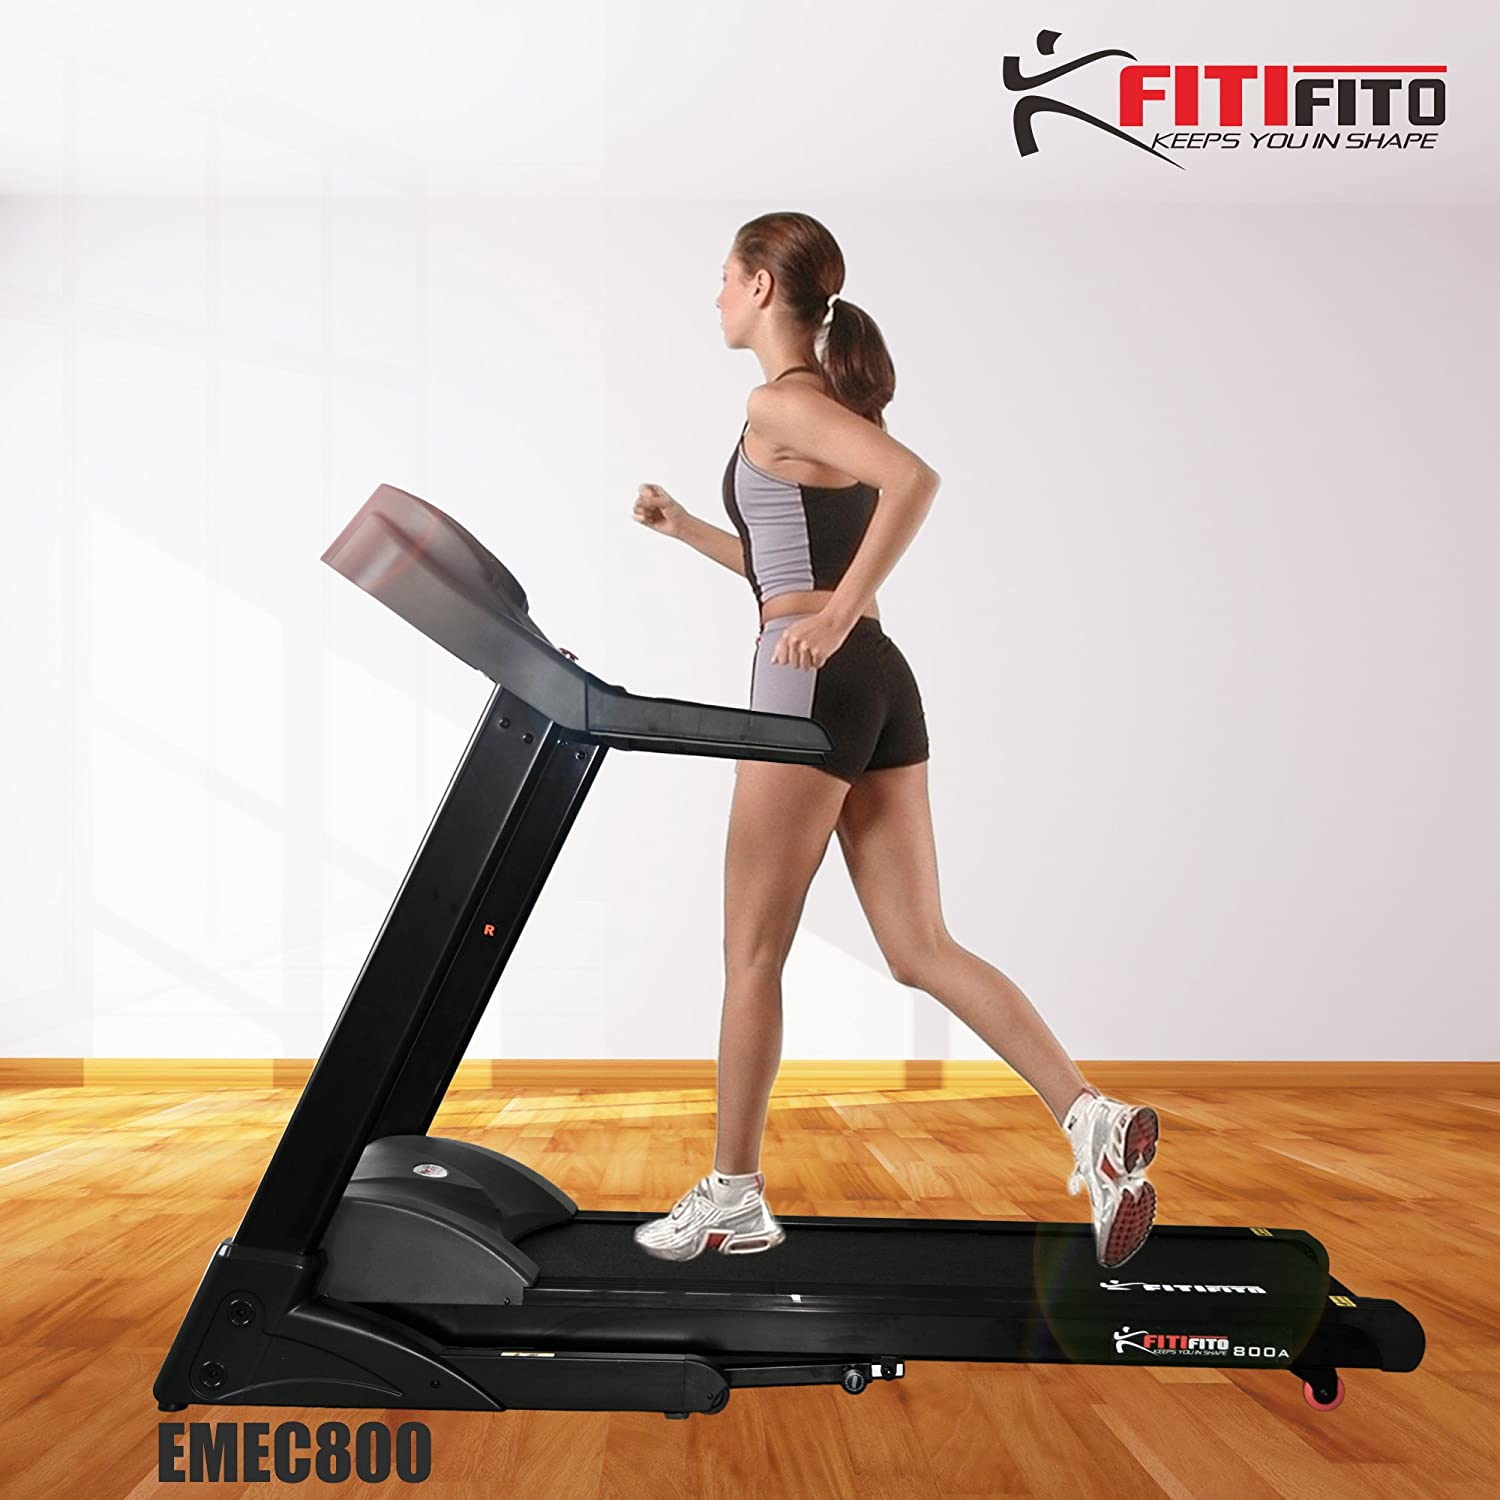 Fitifito® treadmill various Model Exercise Bike Fitness Device 20+ ...